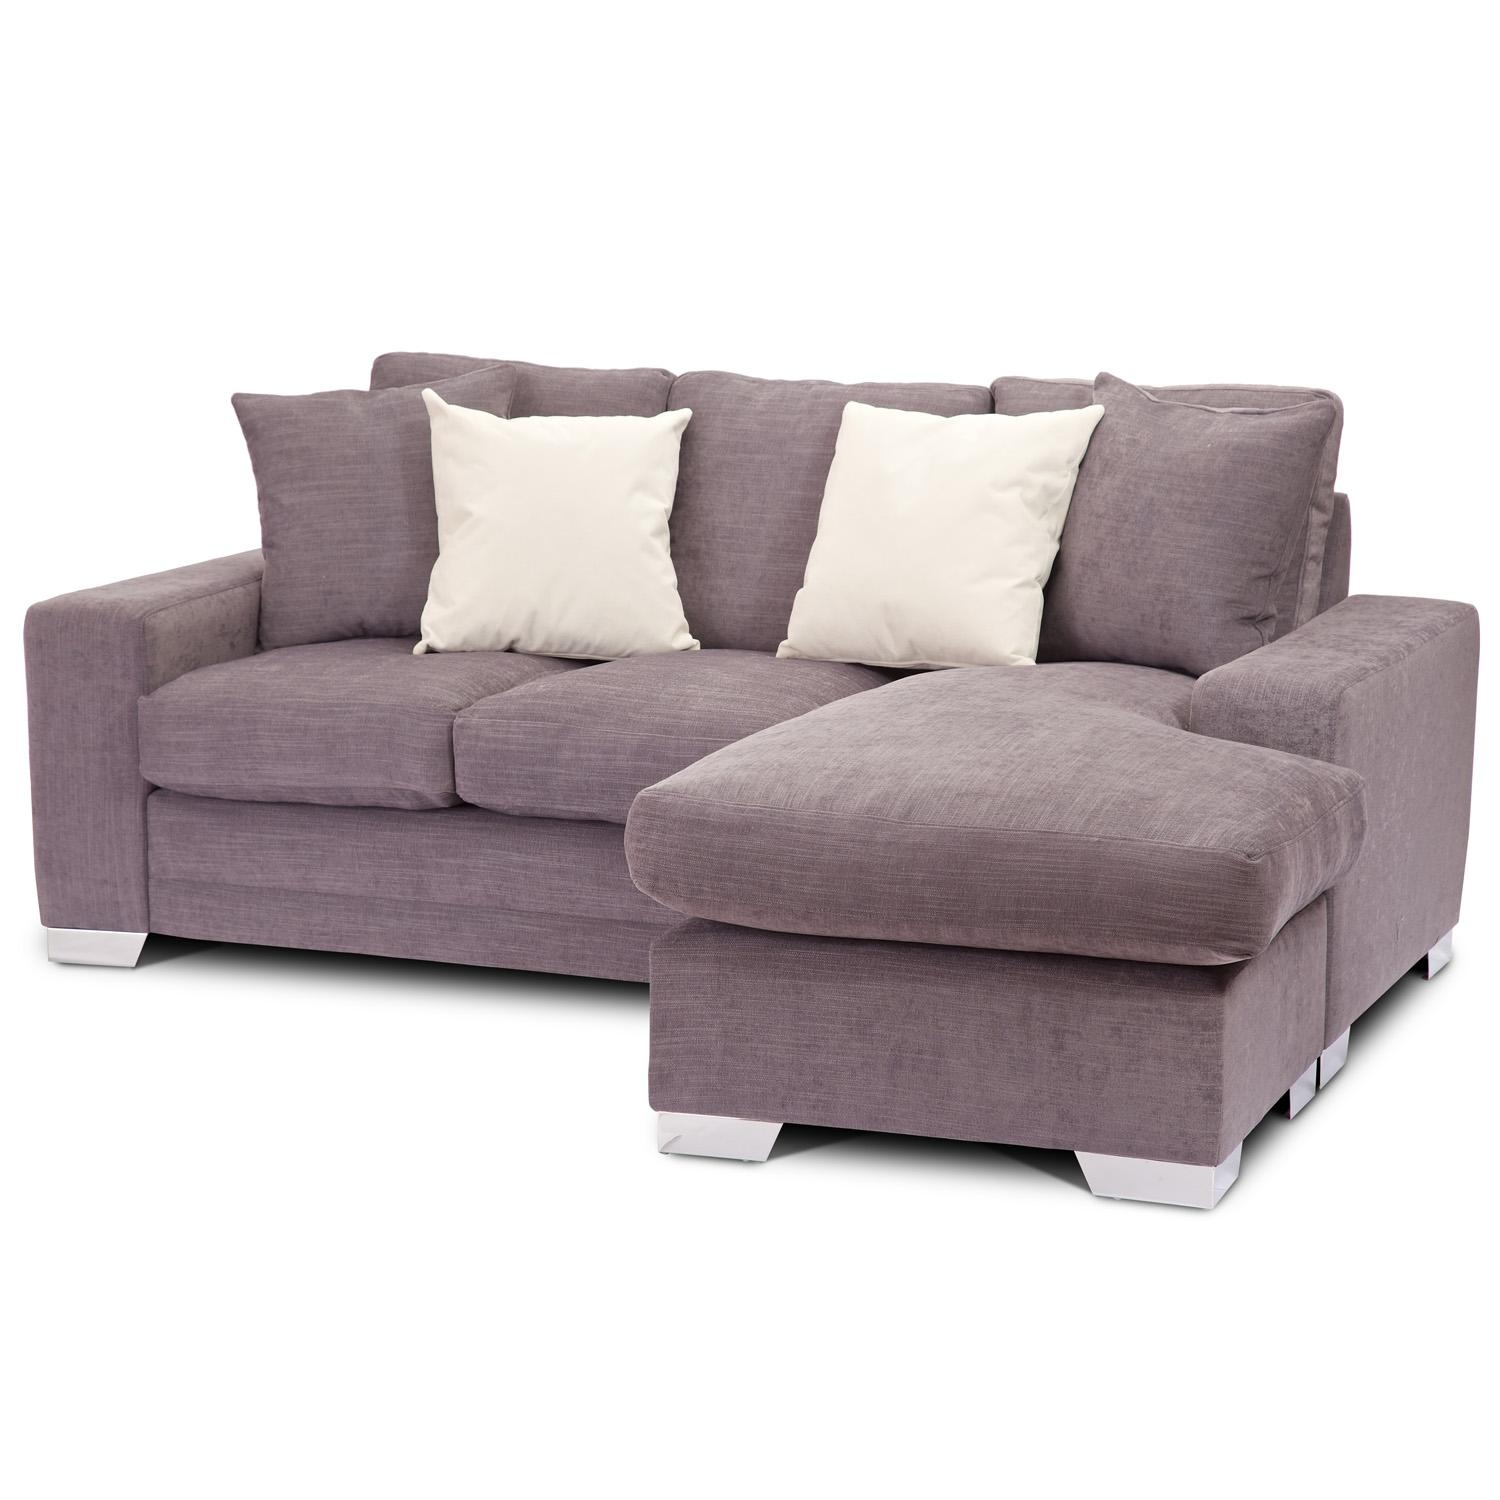 Sofas: Classic Meets Contemporary Chaise Sofa Bed For Ideal Living Throughout Chaise Longue Sofa Beds (View 20 of 20)